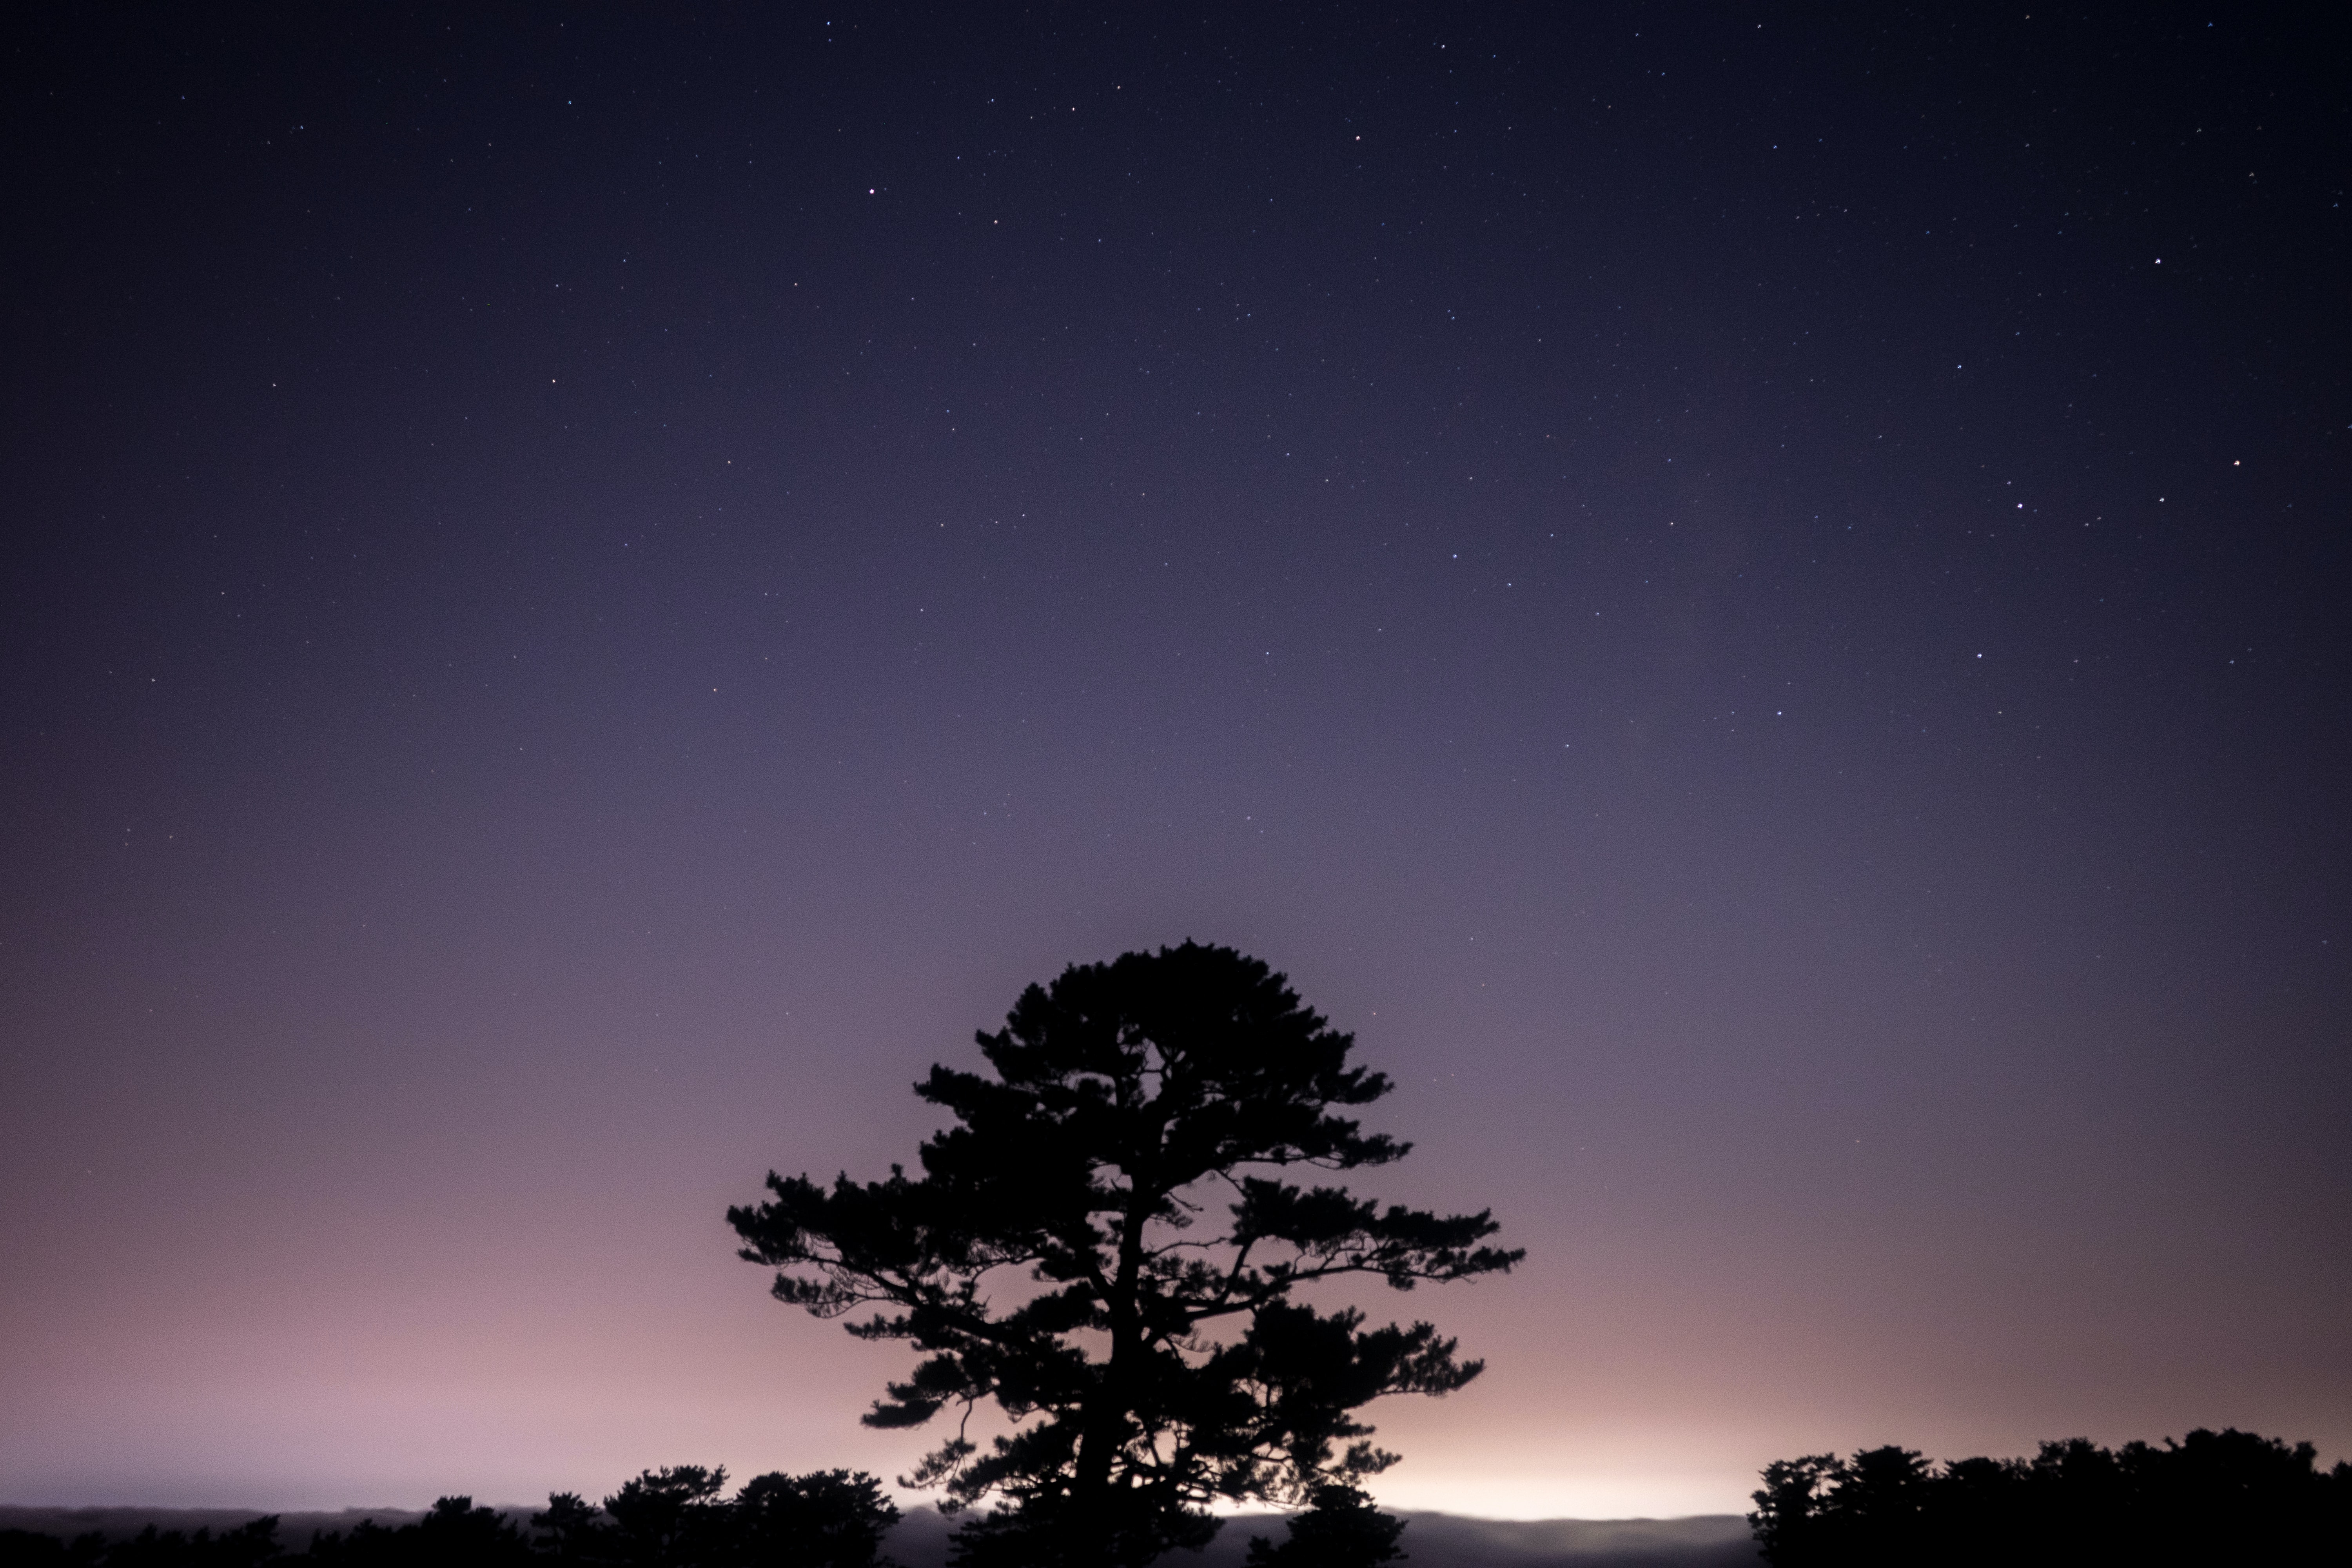 A silhouette of a large tree against purple starry sky